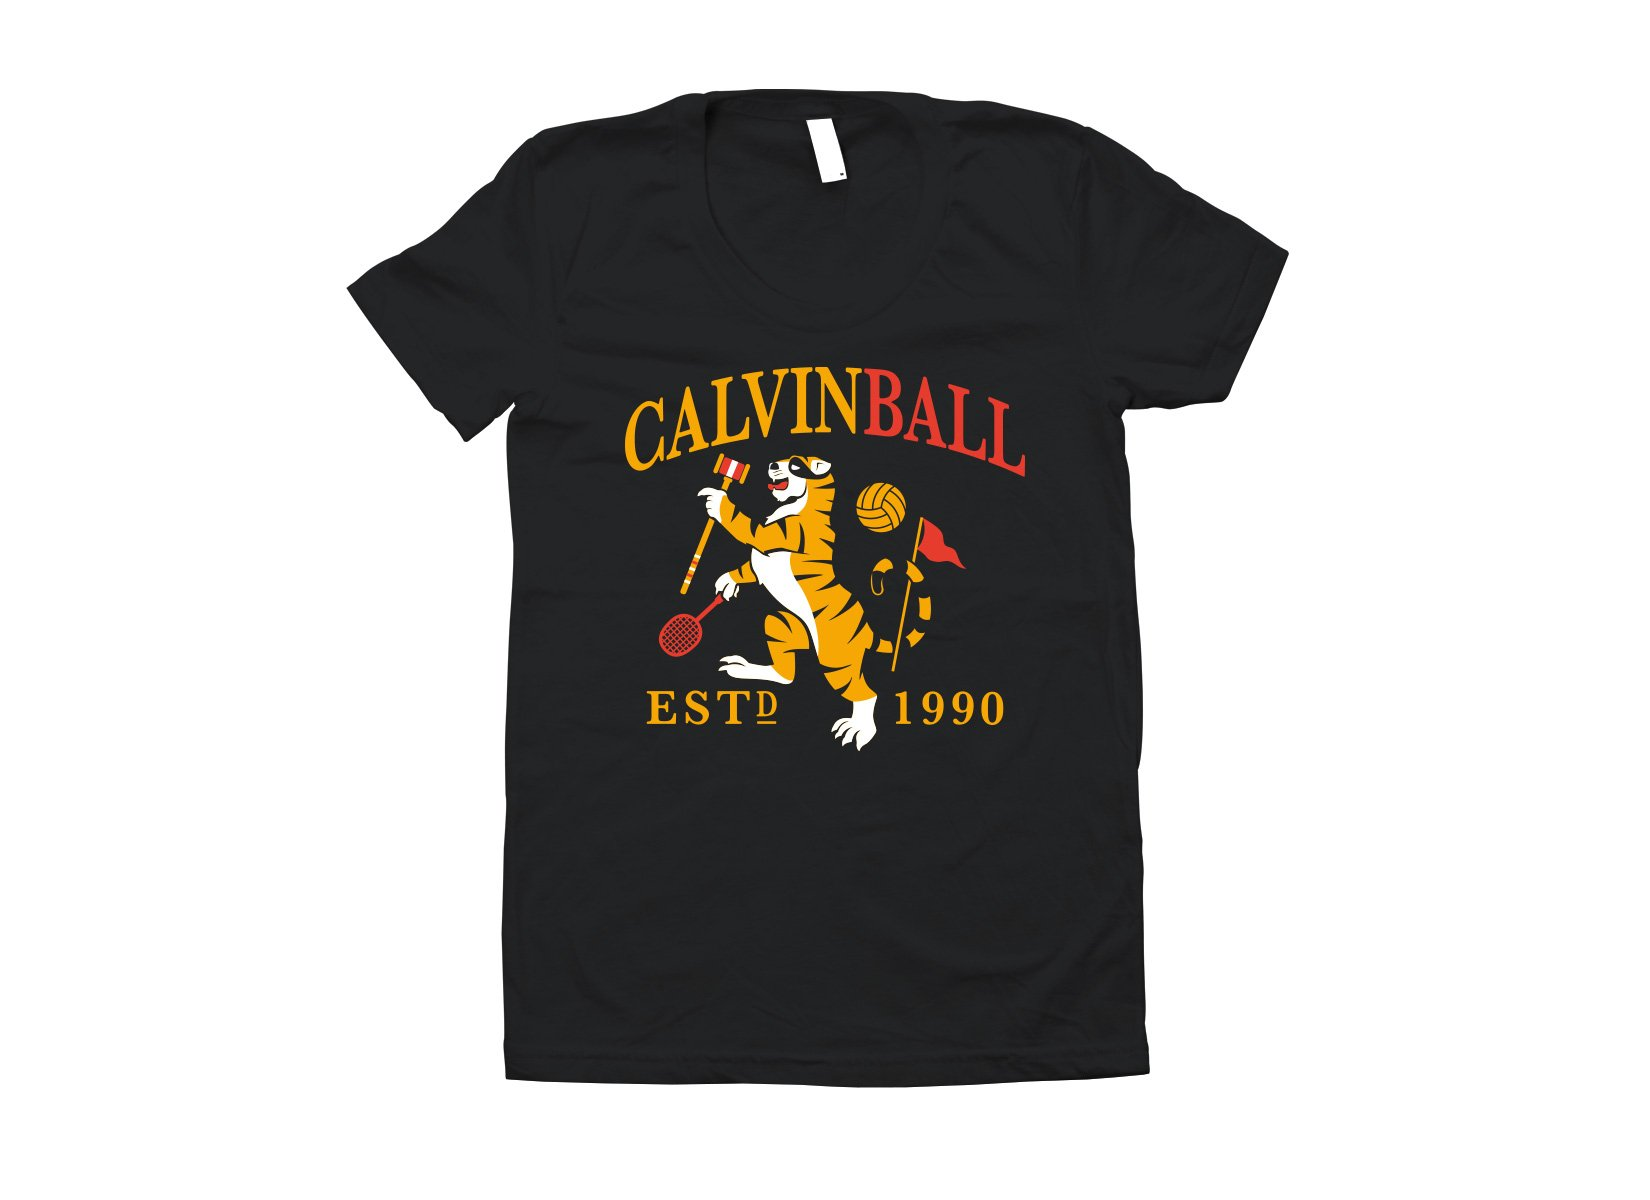 Calvinball on Juniors T-Shirt